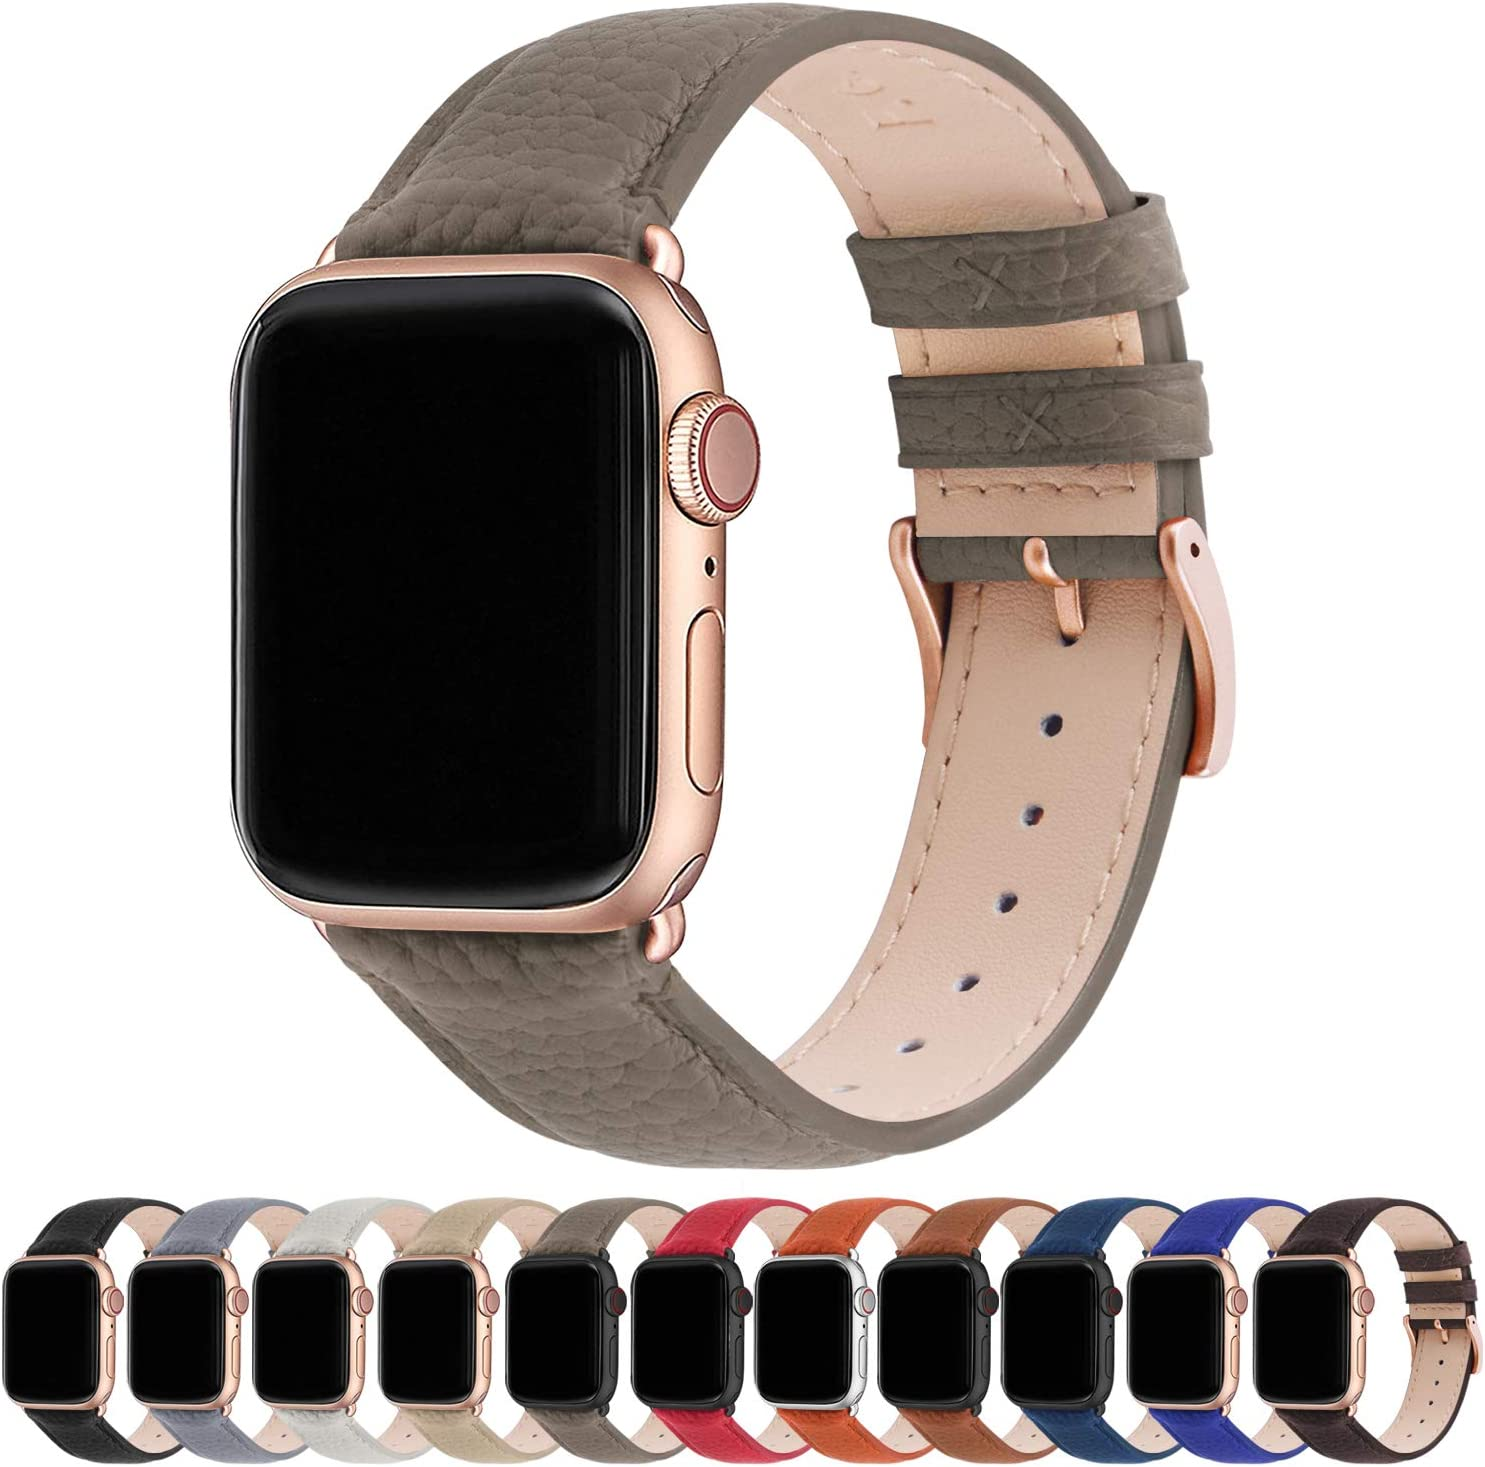 Fullmosa Compatible Apple Watch Band 44mm 42mm 40mm 38mm Leather Compatible iWatch Band/Strap Compatible Apple Watch SE & Series 6 5 4 3 2 1, 38mm 40mm, Elephant Grey + Rose Gold Buckle